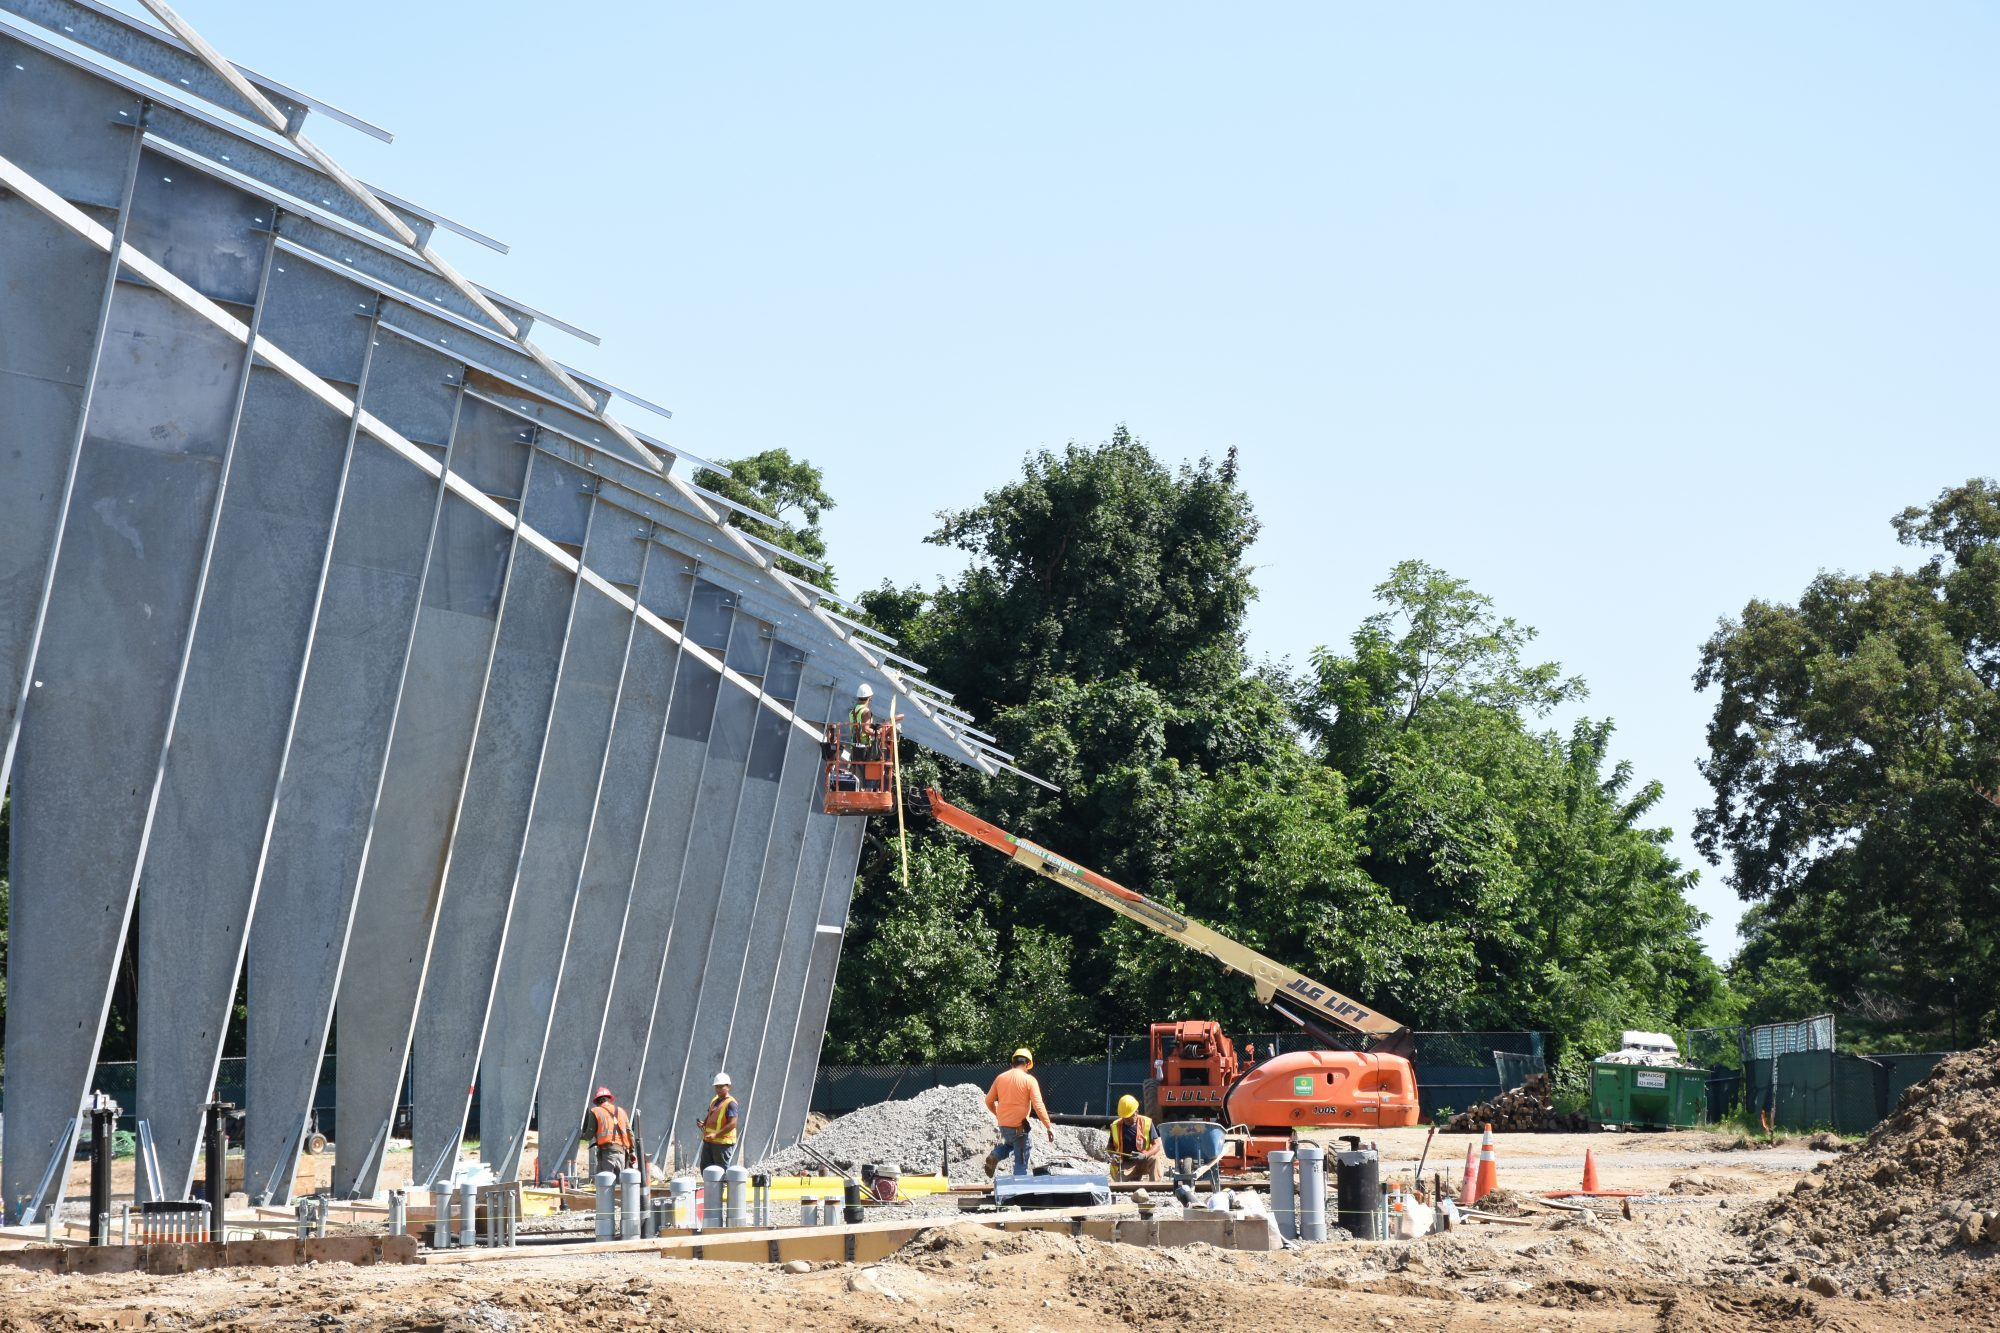 Construction workers work on a new indoor practice facility on Stony Brook University's campus on Thursday, July 25, 2019. The facility is designed for outdoor sports to be able to continue practicing even in inclement weather, according to Associate Athletics Director Adam McLeod. The facility is due to be complete in December 2019. (Photo by Kiana Wright)